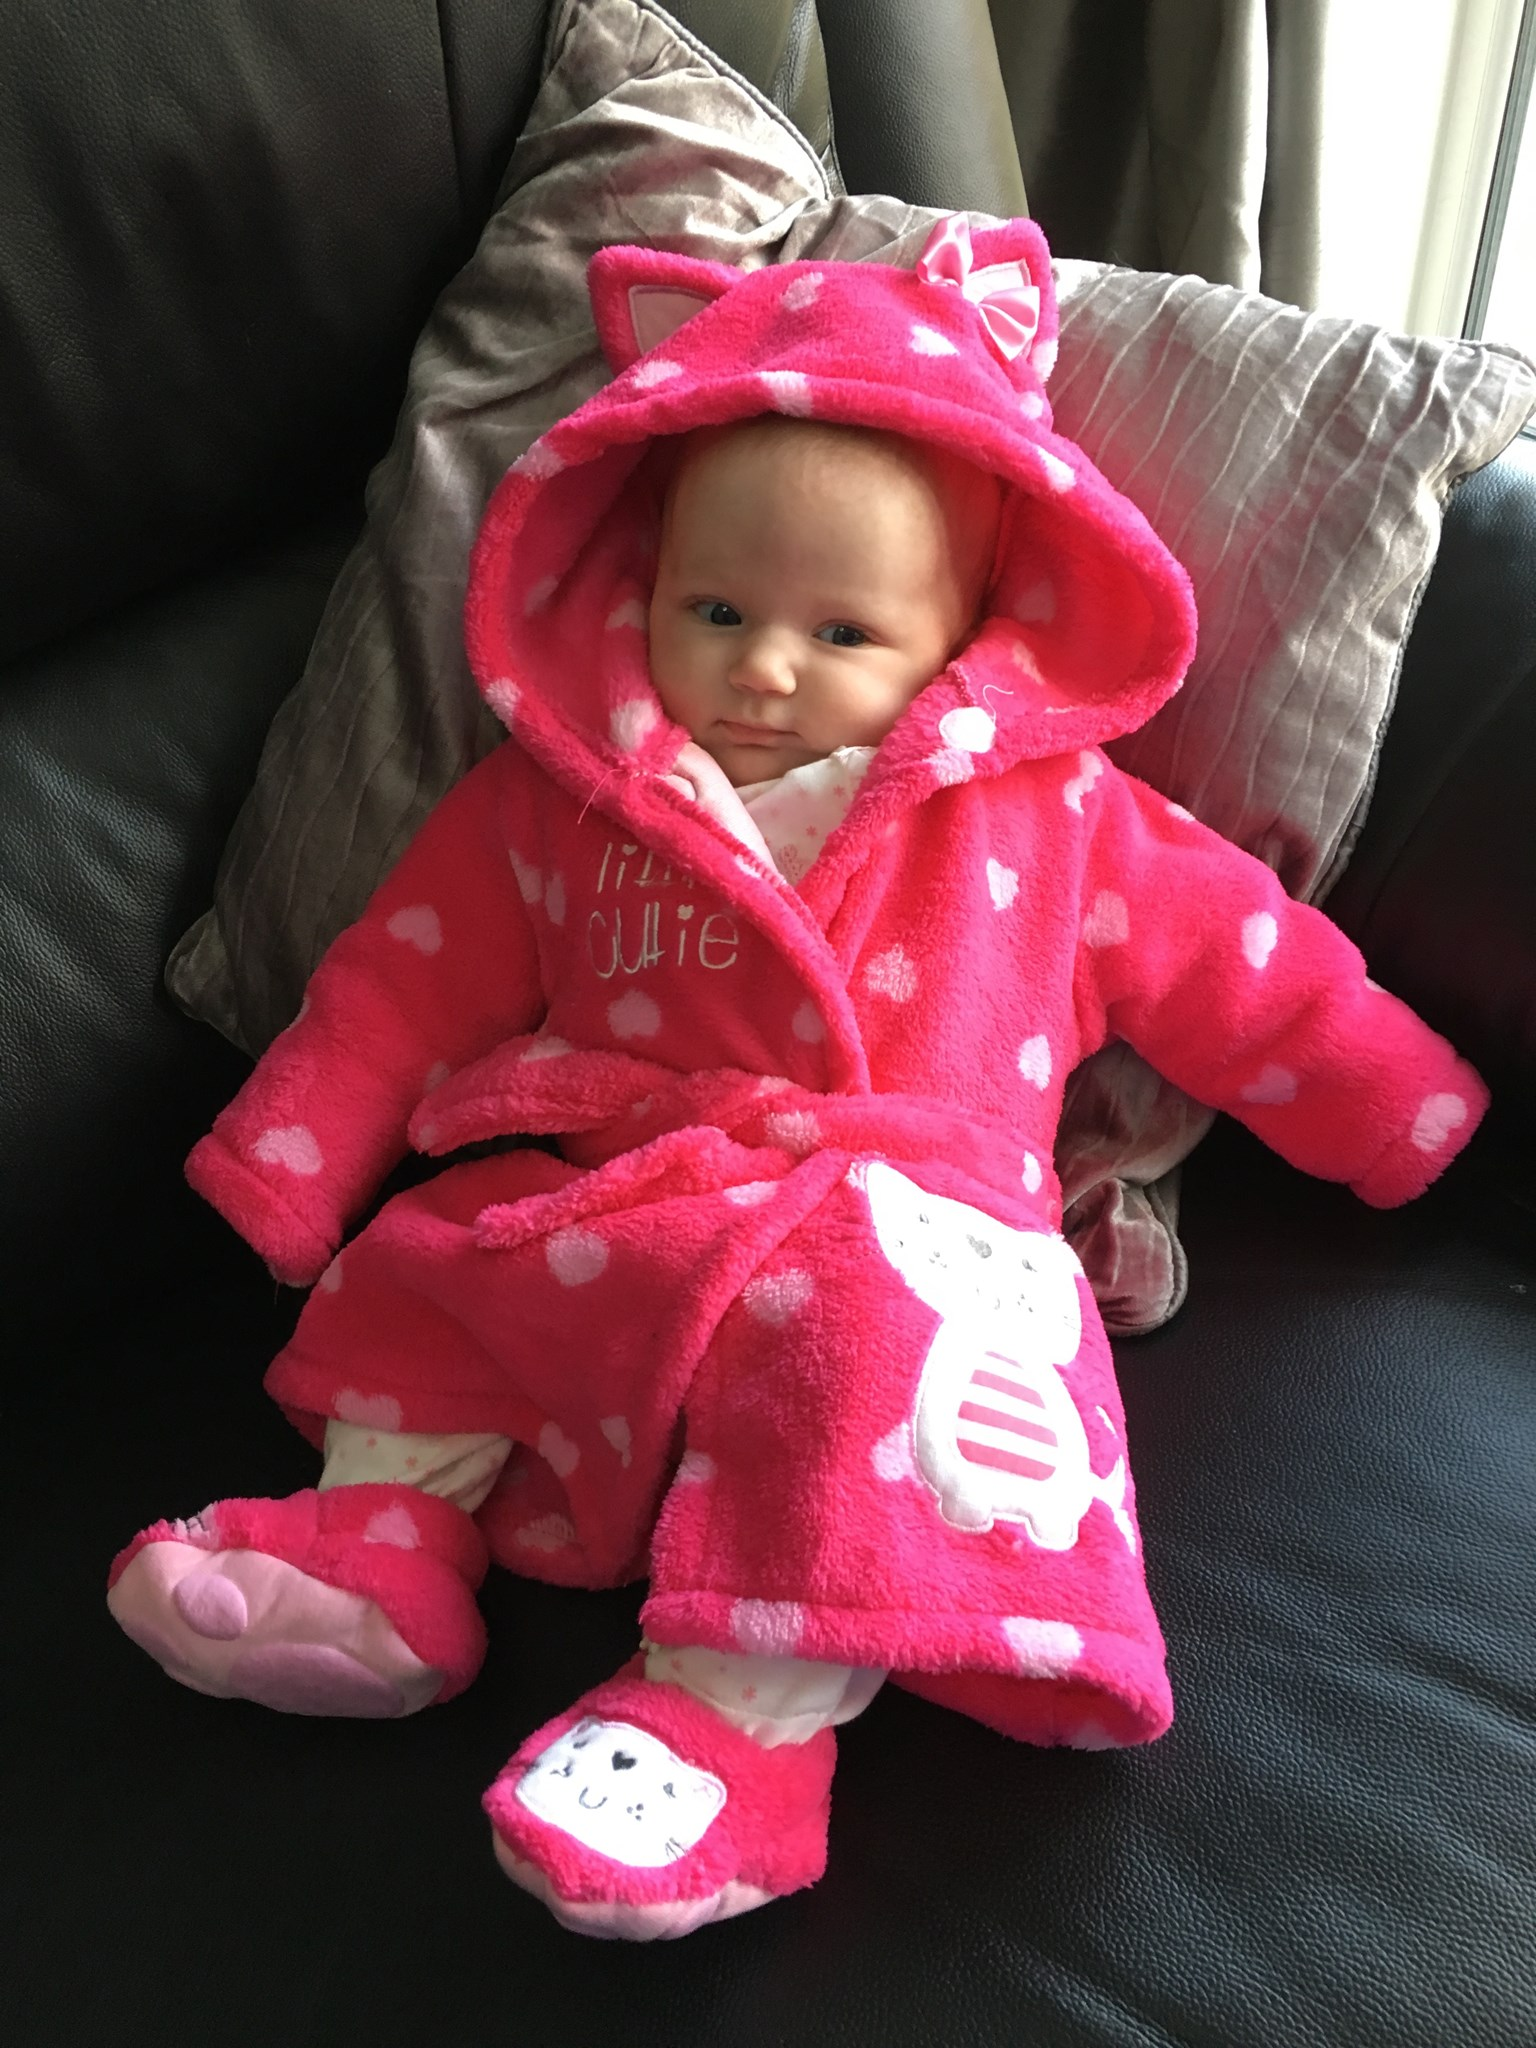 First dressing gown